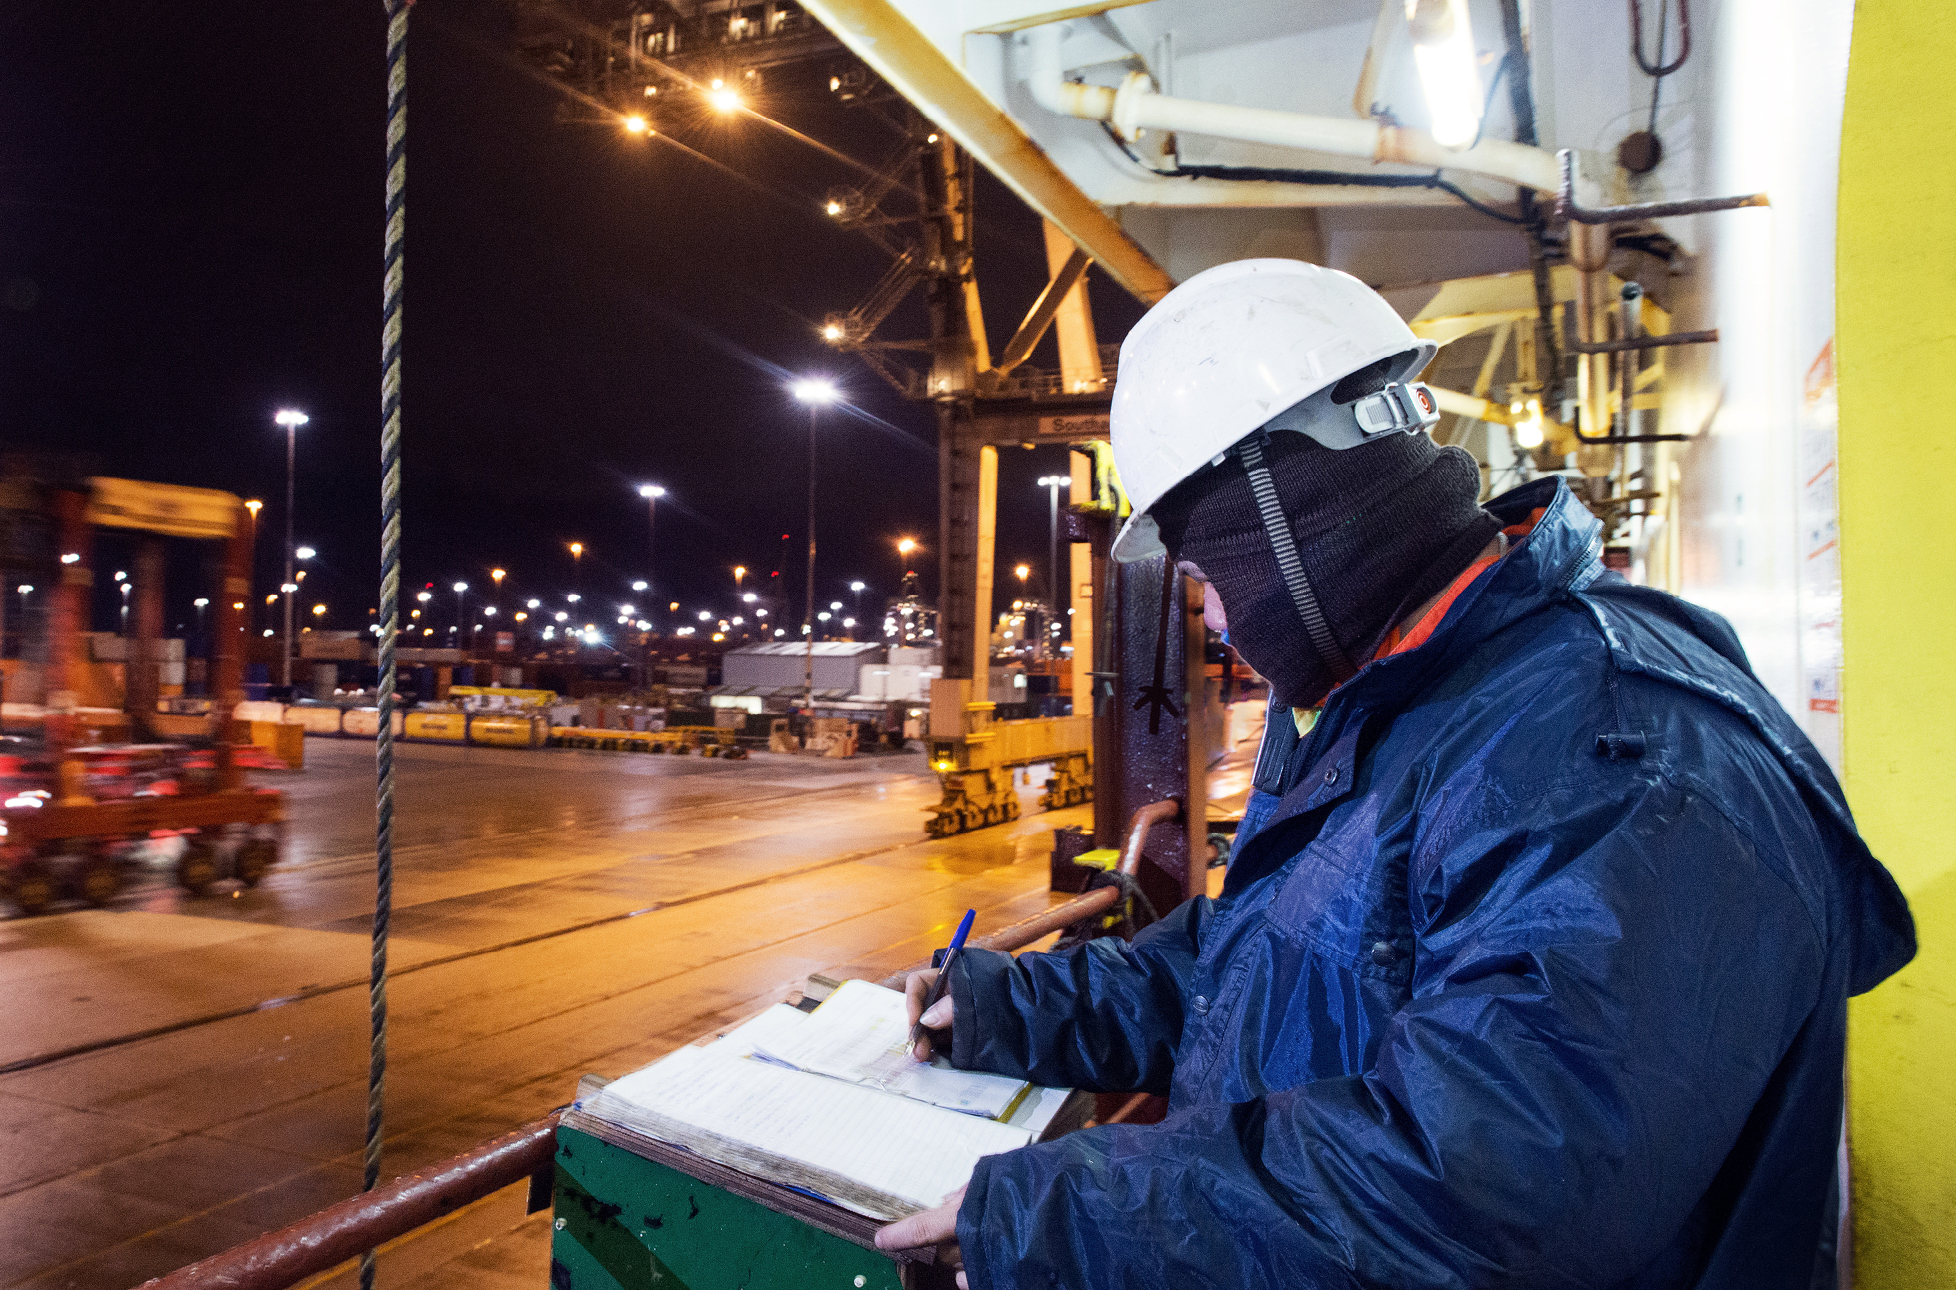 Seafaring workman completing paperwork on site at night